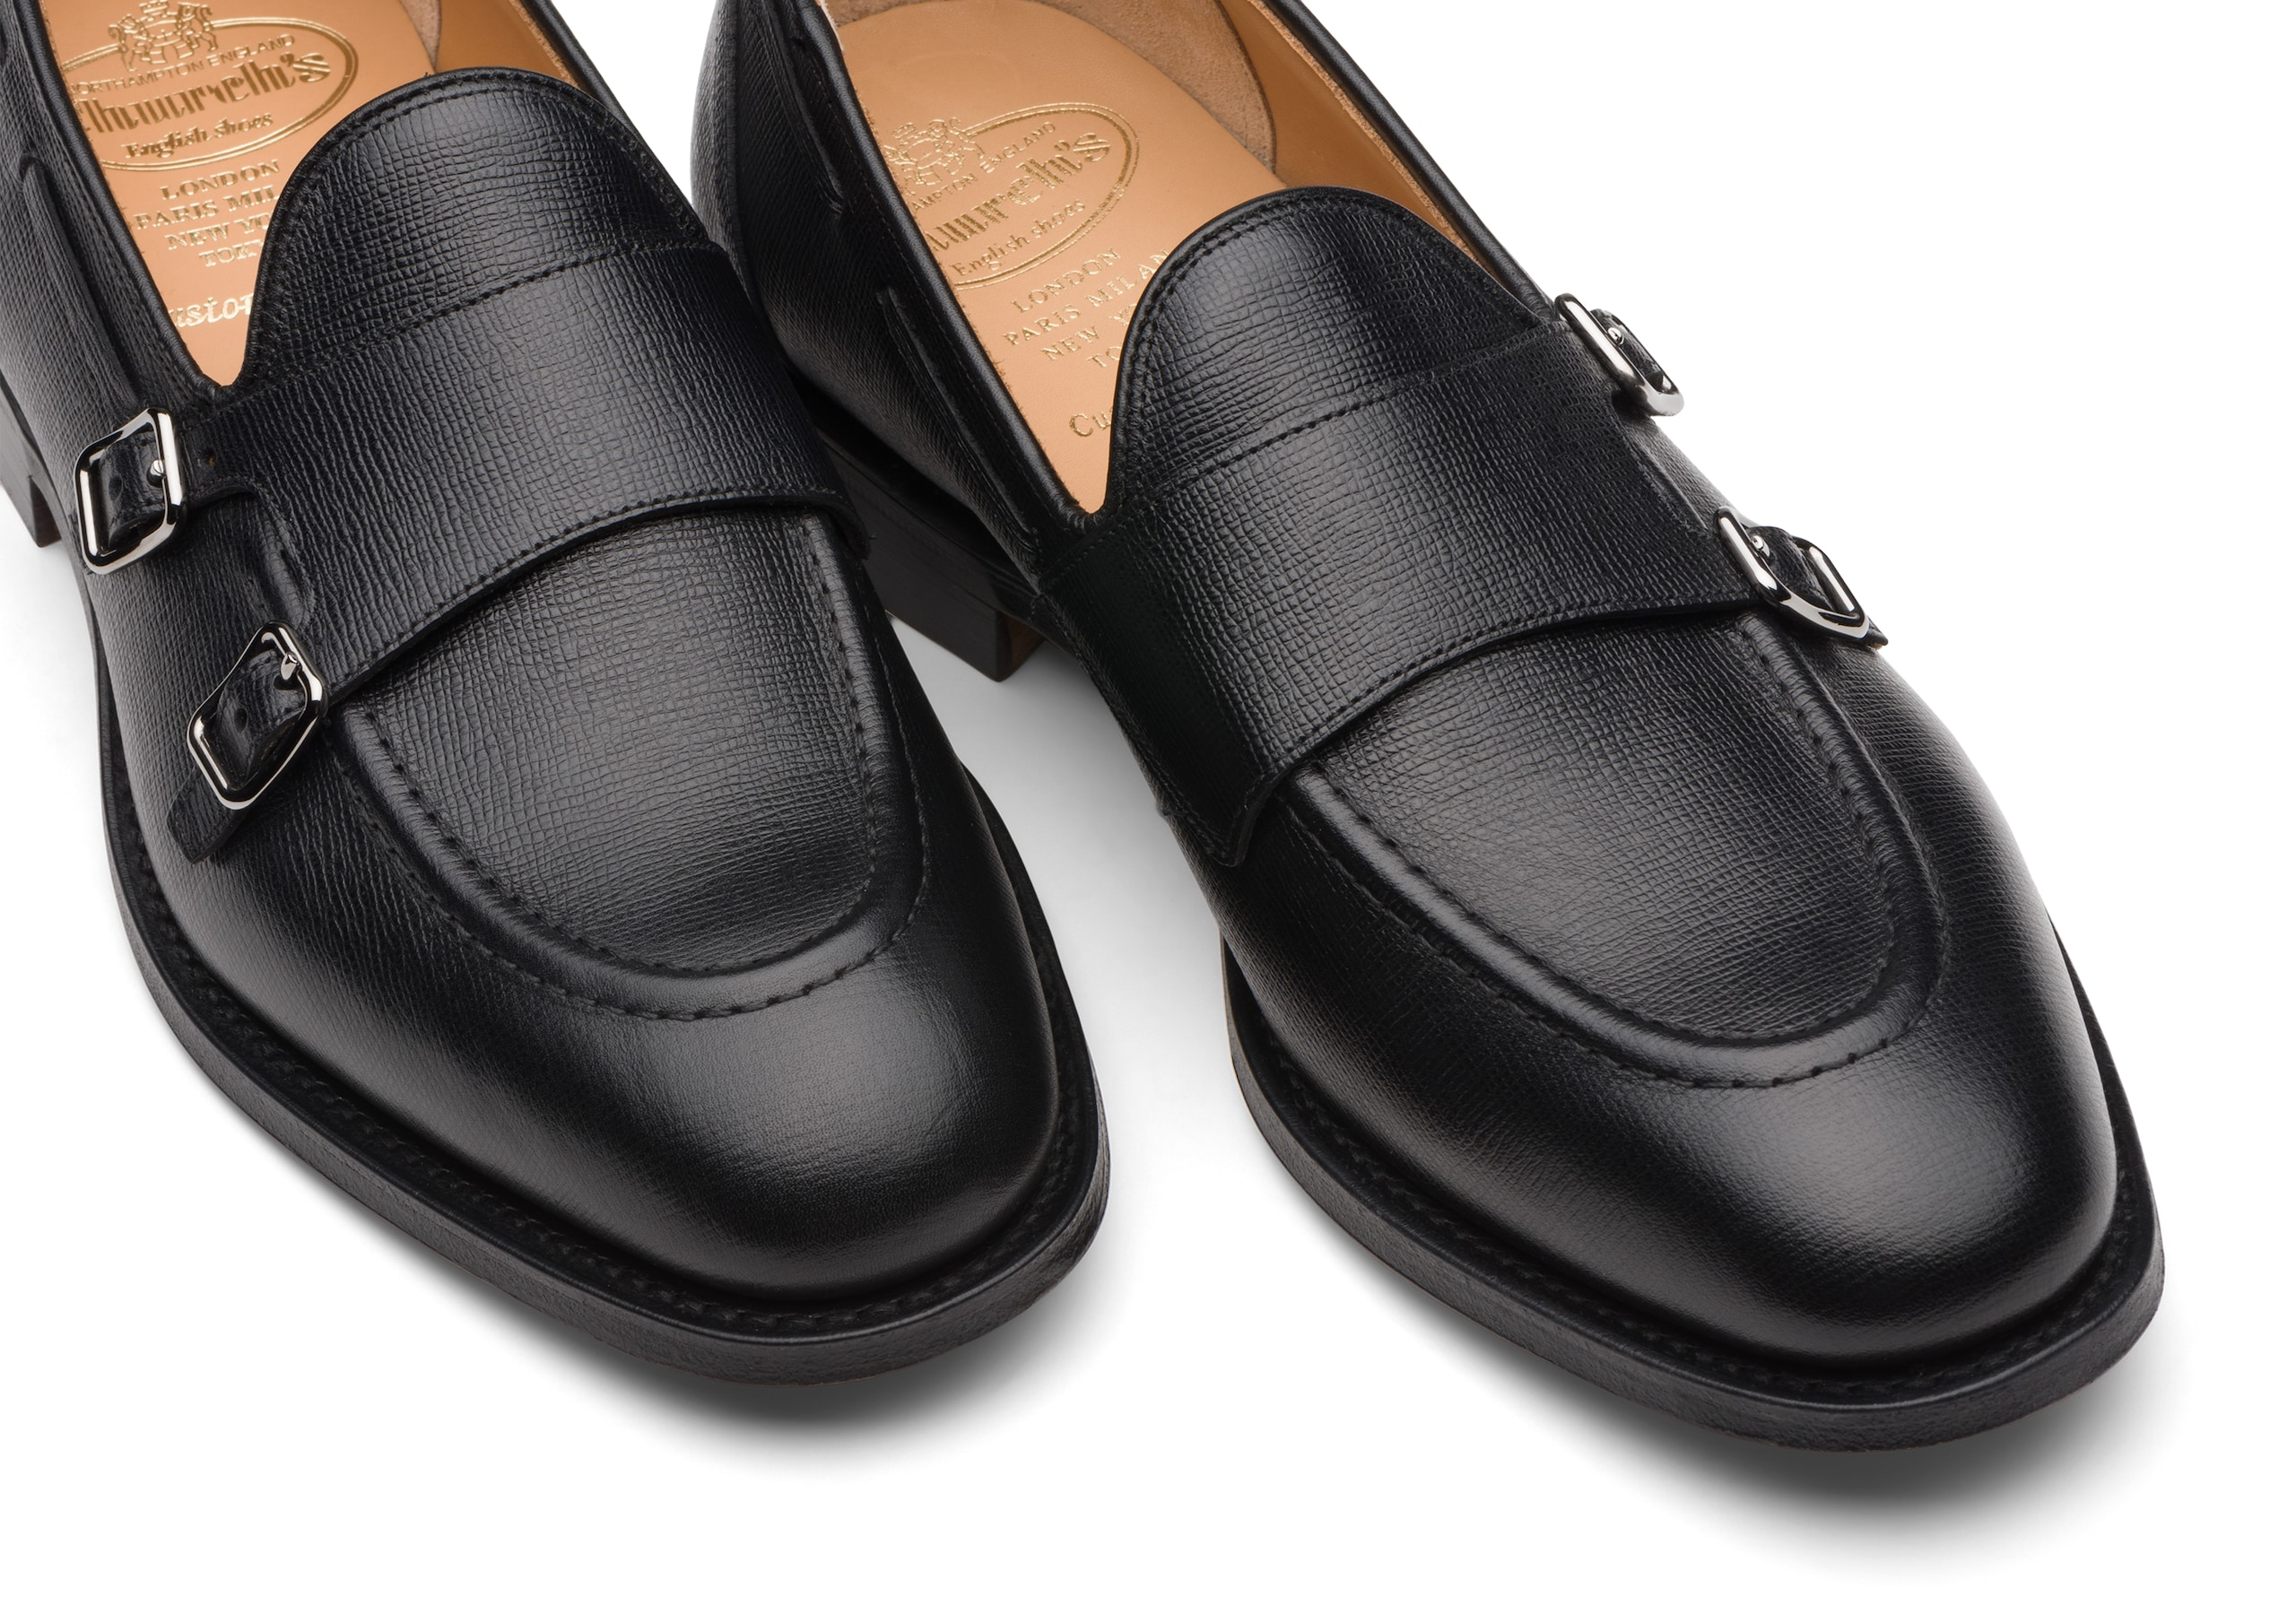 Clatford Church's Monk Strap in Pelle St James Nero